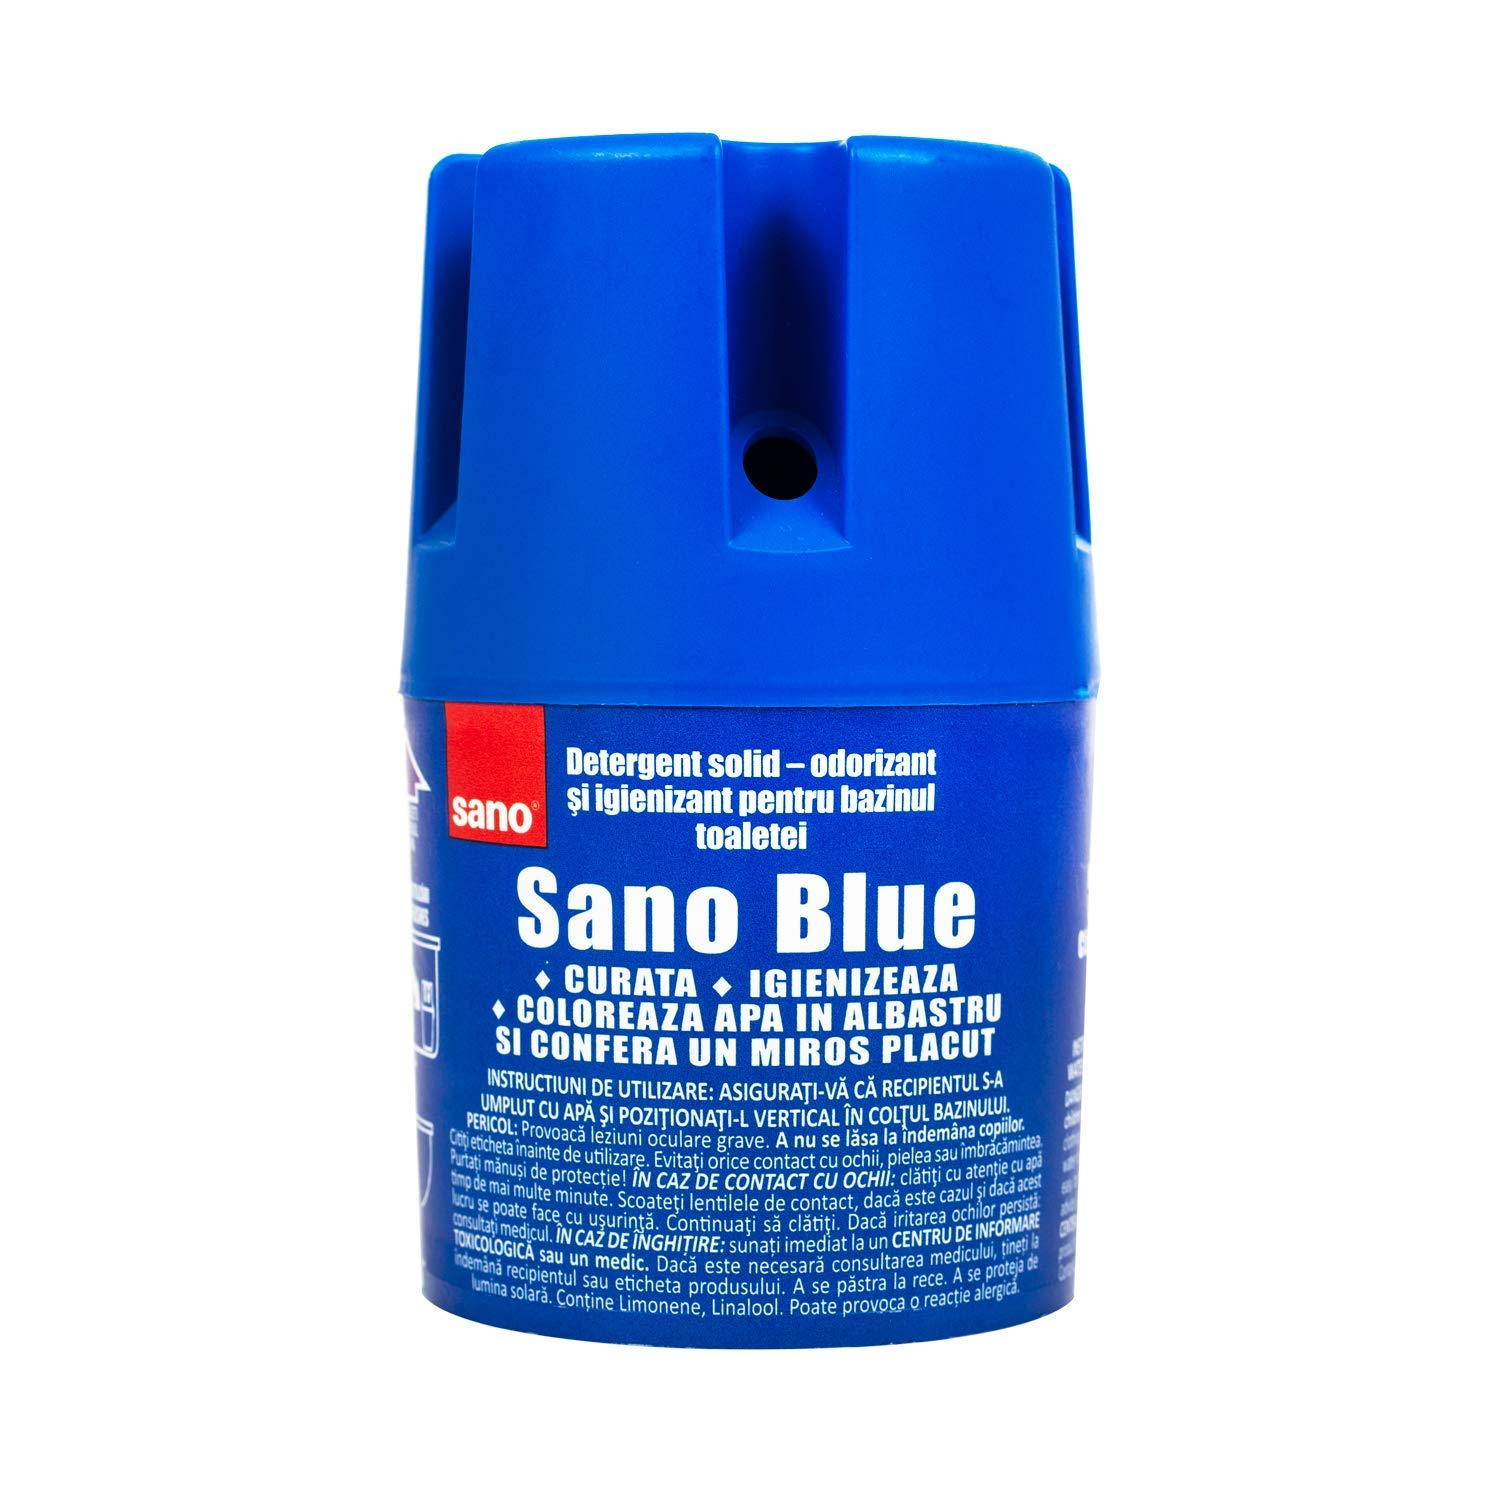 Sano Blue Water Toilet Bowl Cleaner And Long Lasting Air